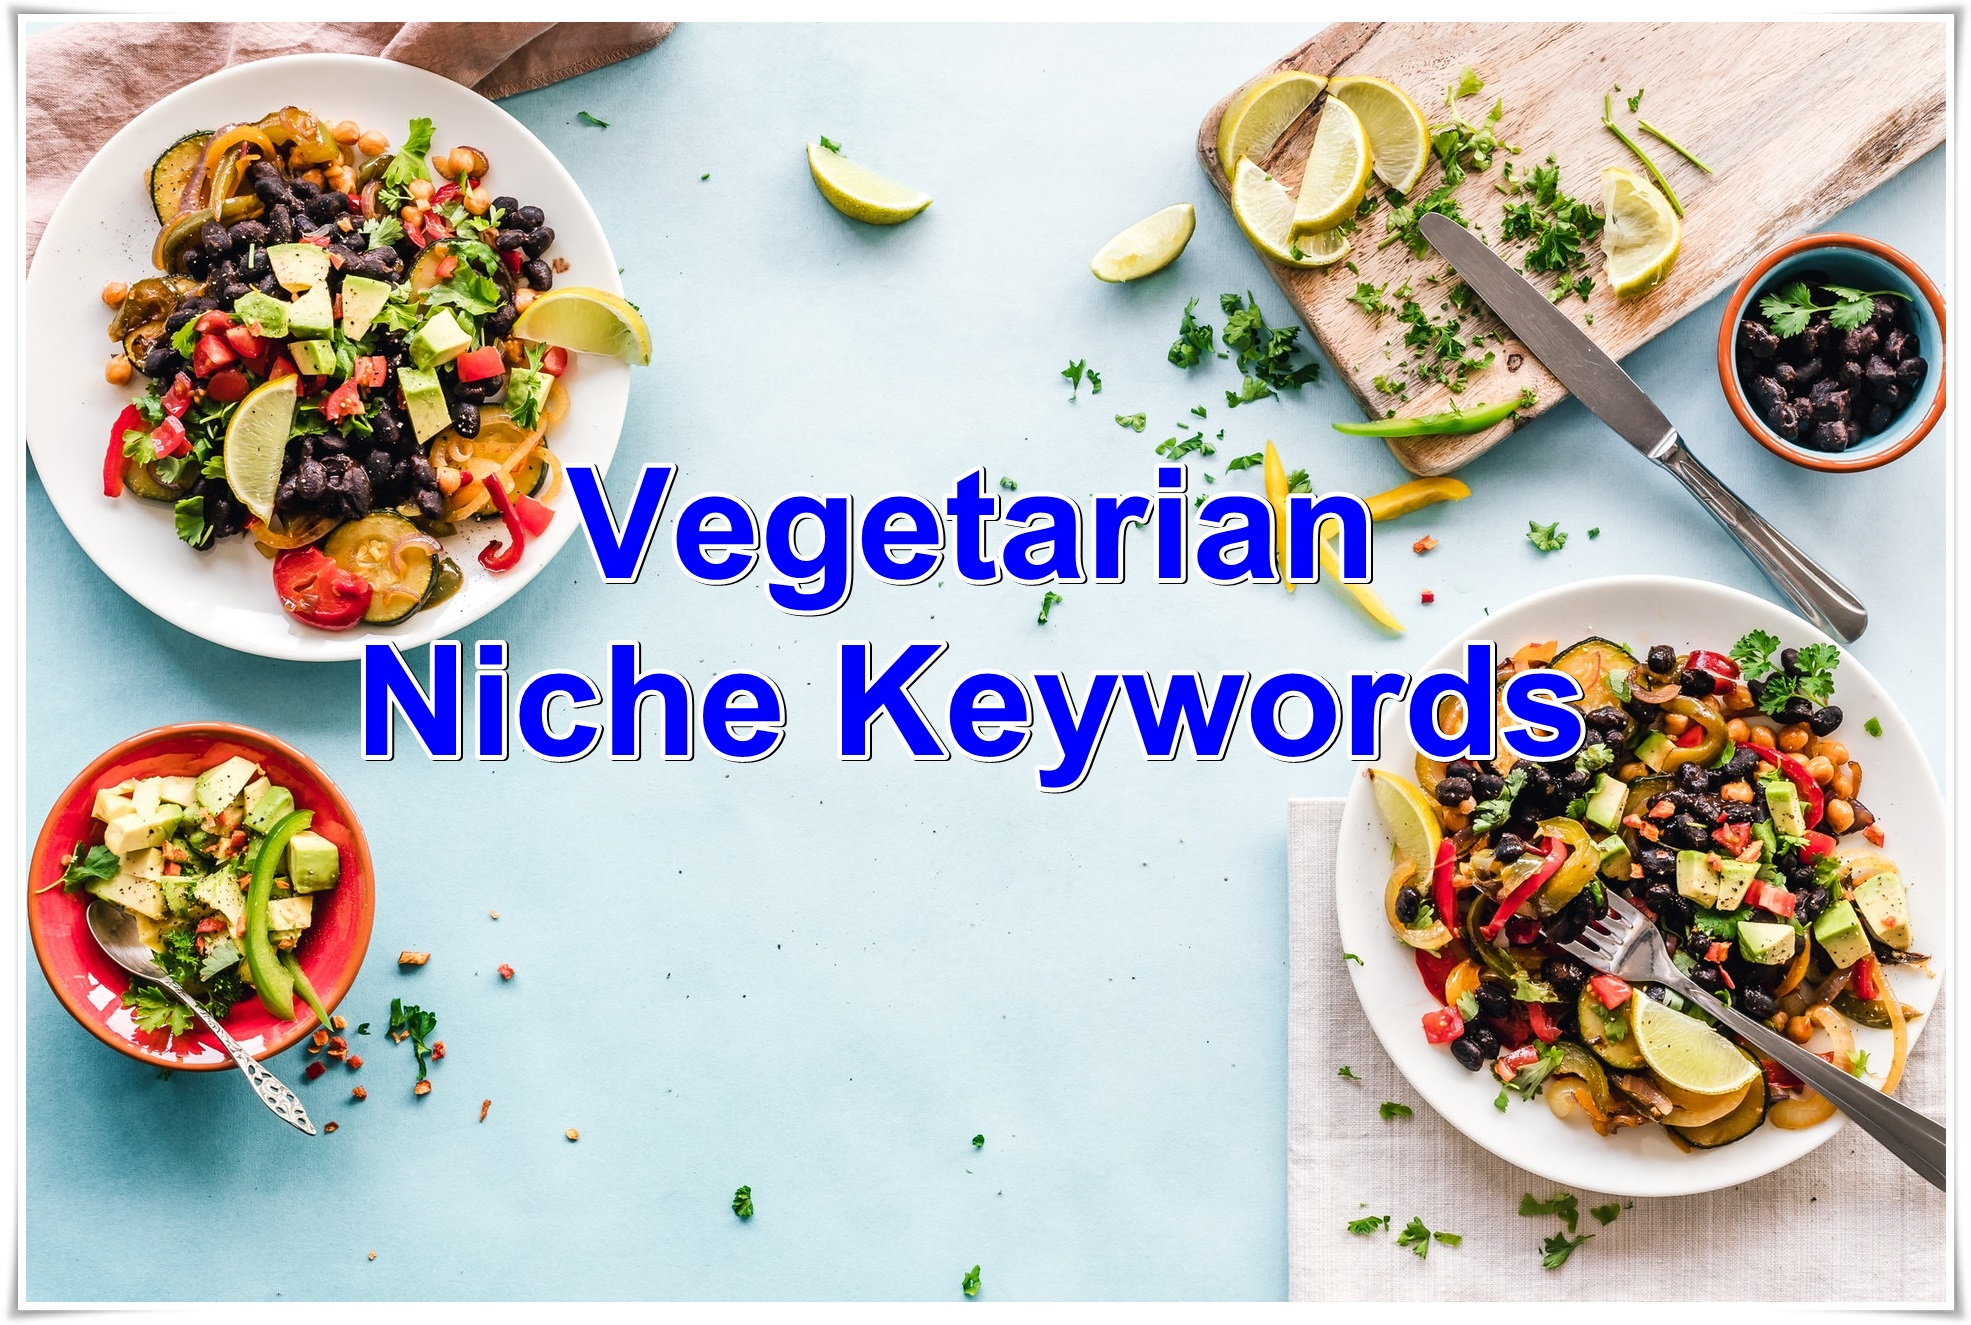 Niche keywords research Vegetarian 2019 Instant Download